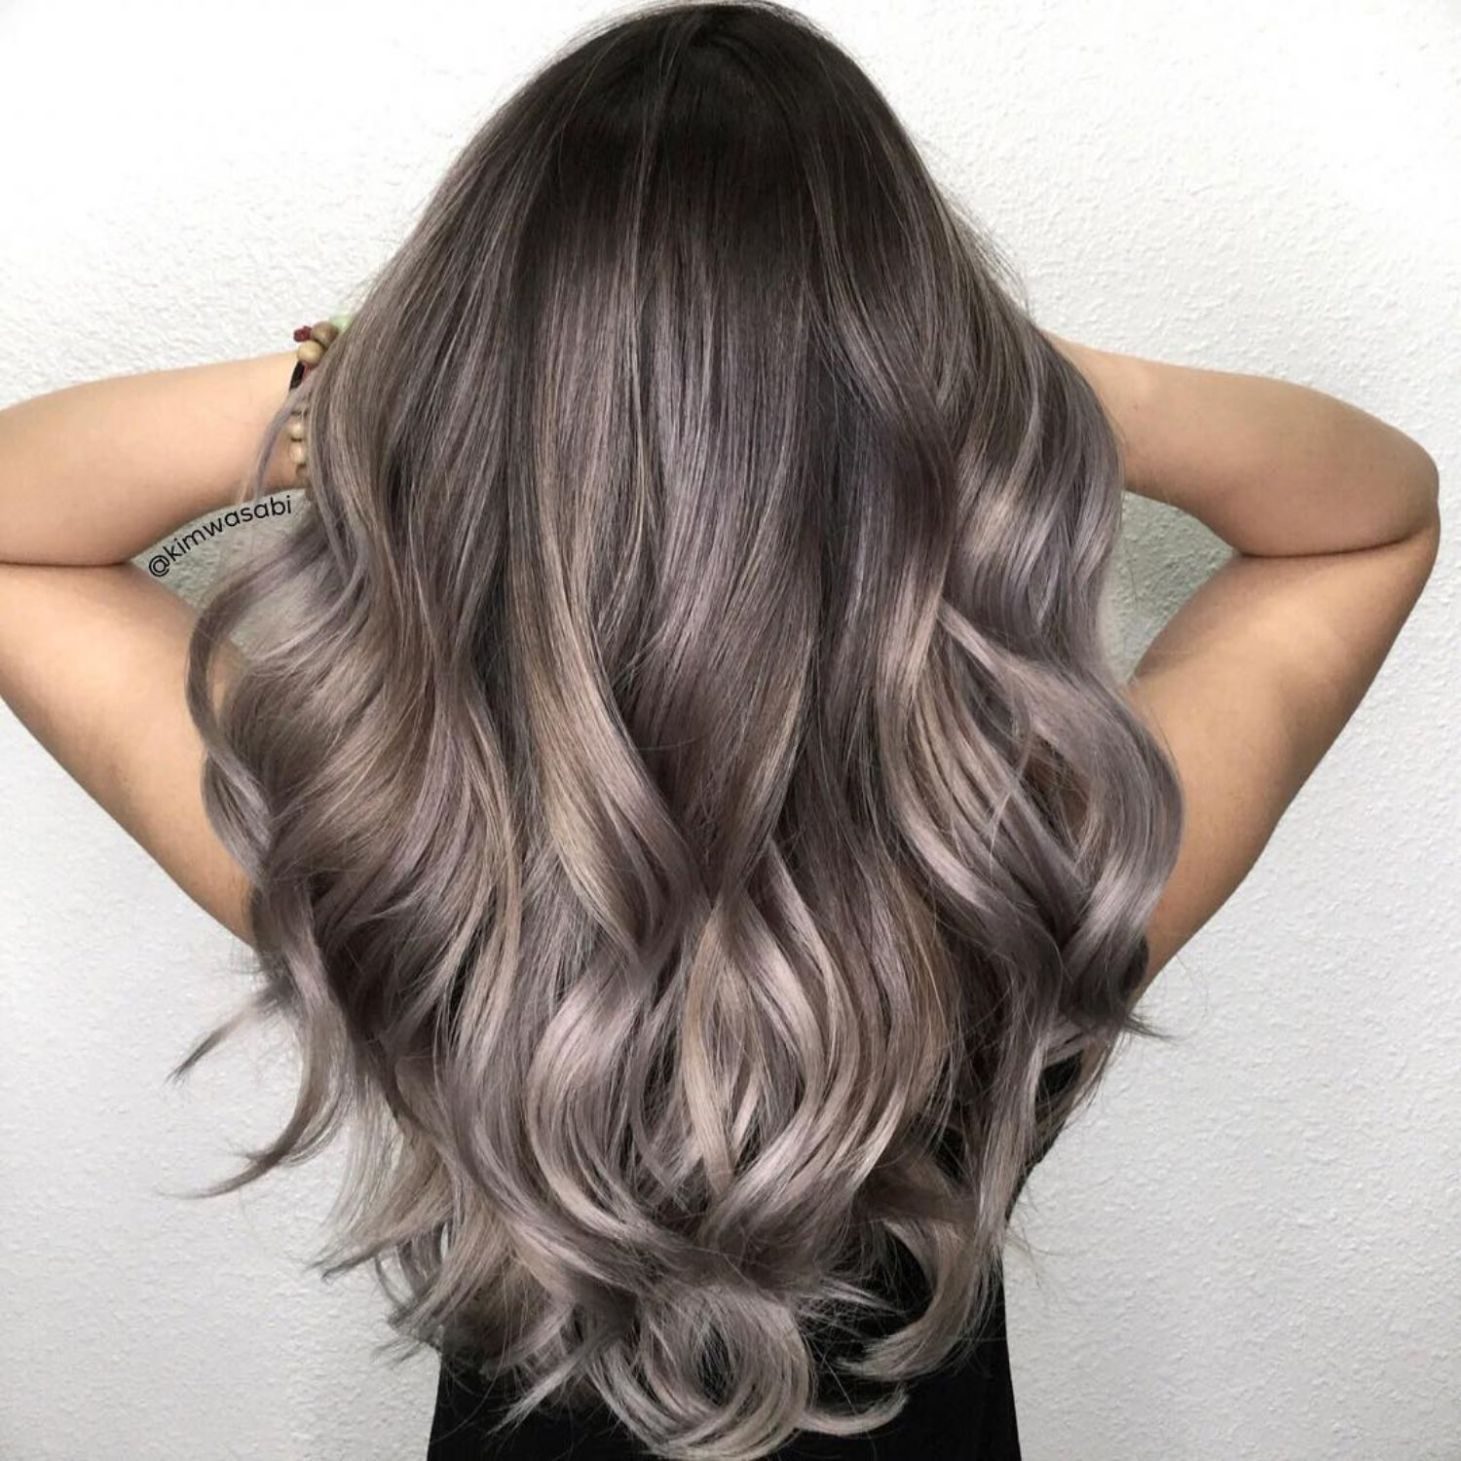 2020 Best Lace Front Wigs Grey Hair At 22 Steel Grey Hair Grey And Purple Wig Platinum Color Wigs